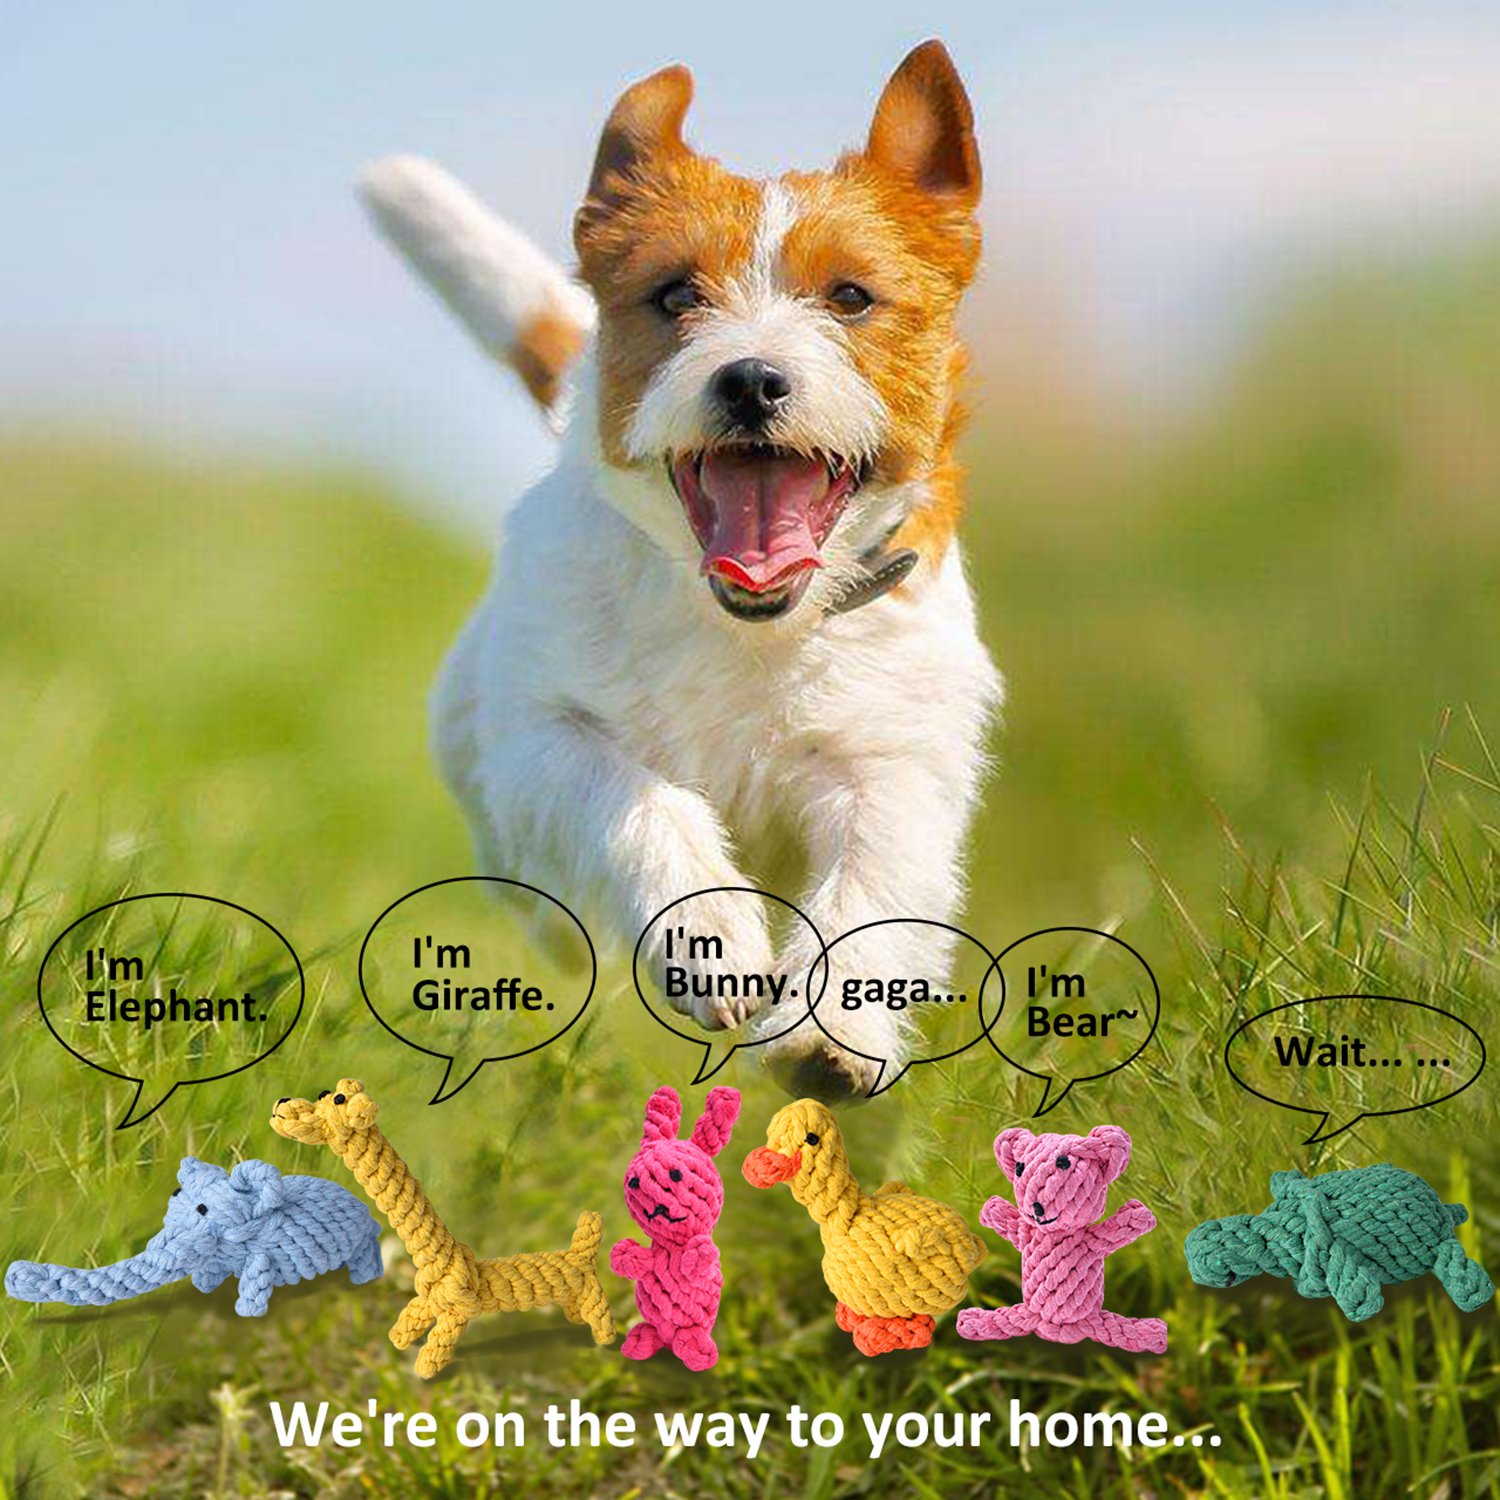 Dog Rope Toys Cute Animals Design, Cotton Puppy Toys for Small Dogs. Rope Dog Toy Set pack of 6 by TOYSBOOM (Image #2)